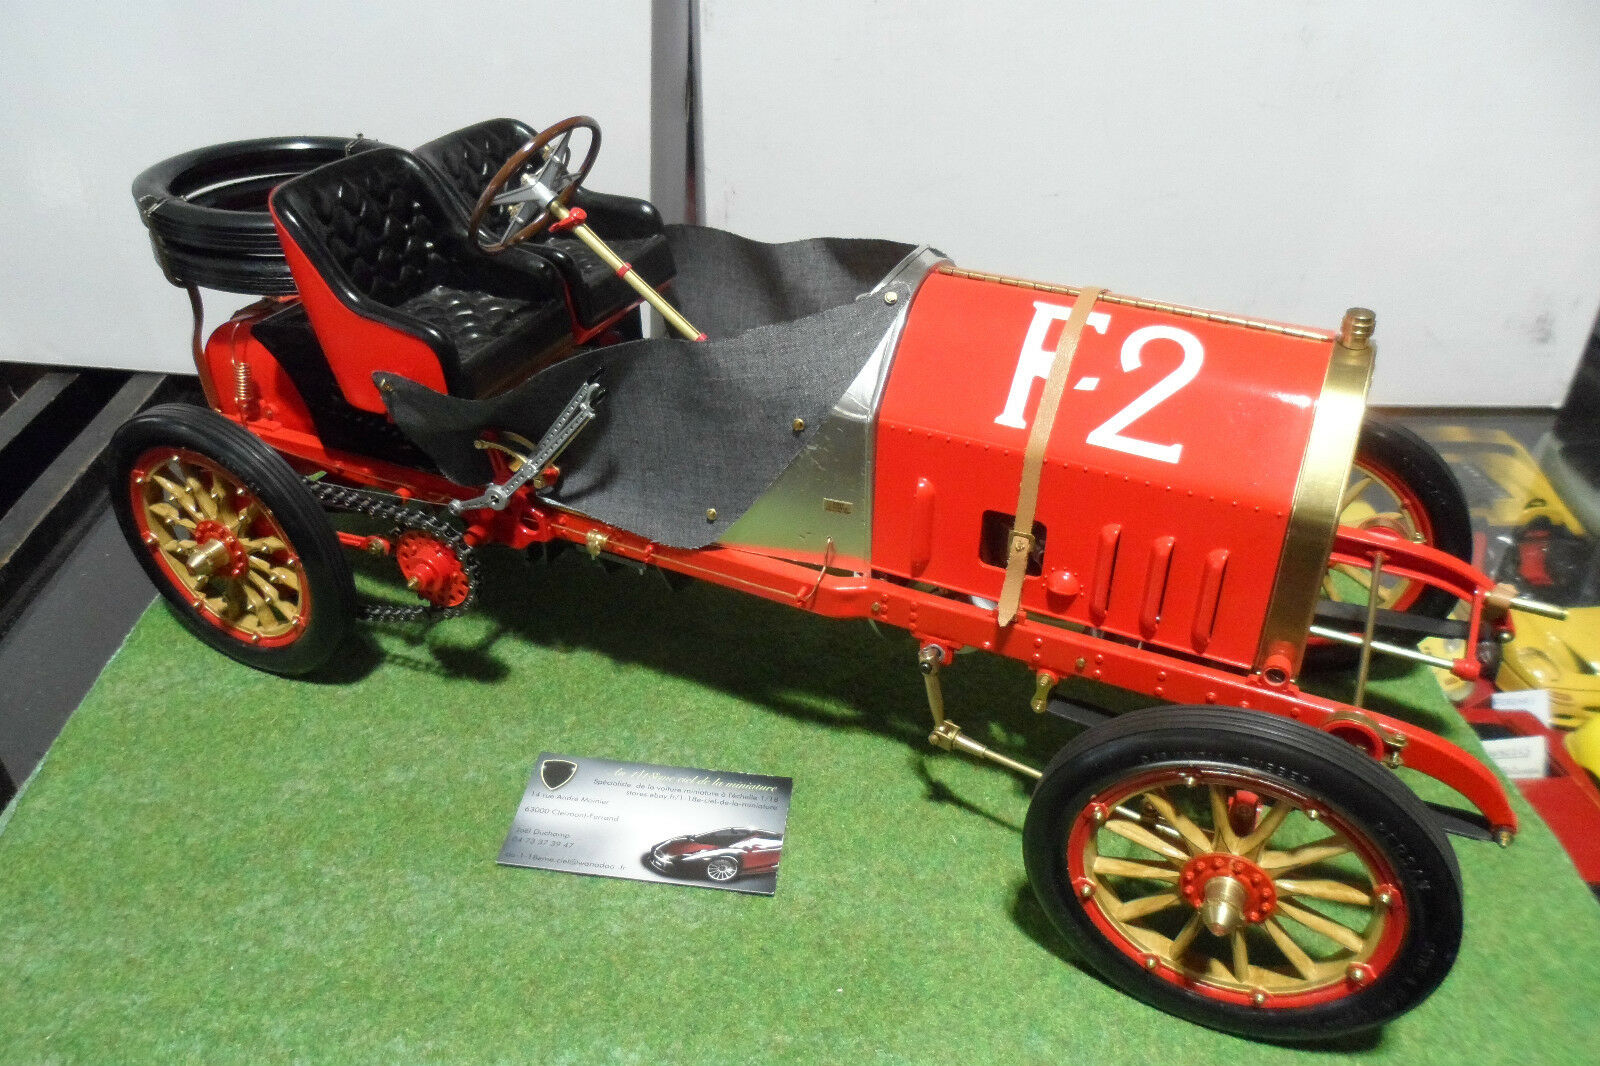 FIAT 130 HP F-2 RACER 1907 grand prix France montee 1 8 POCHER voiture miniature